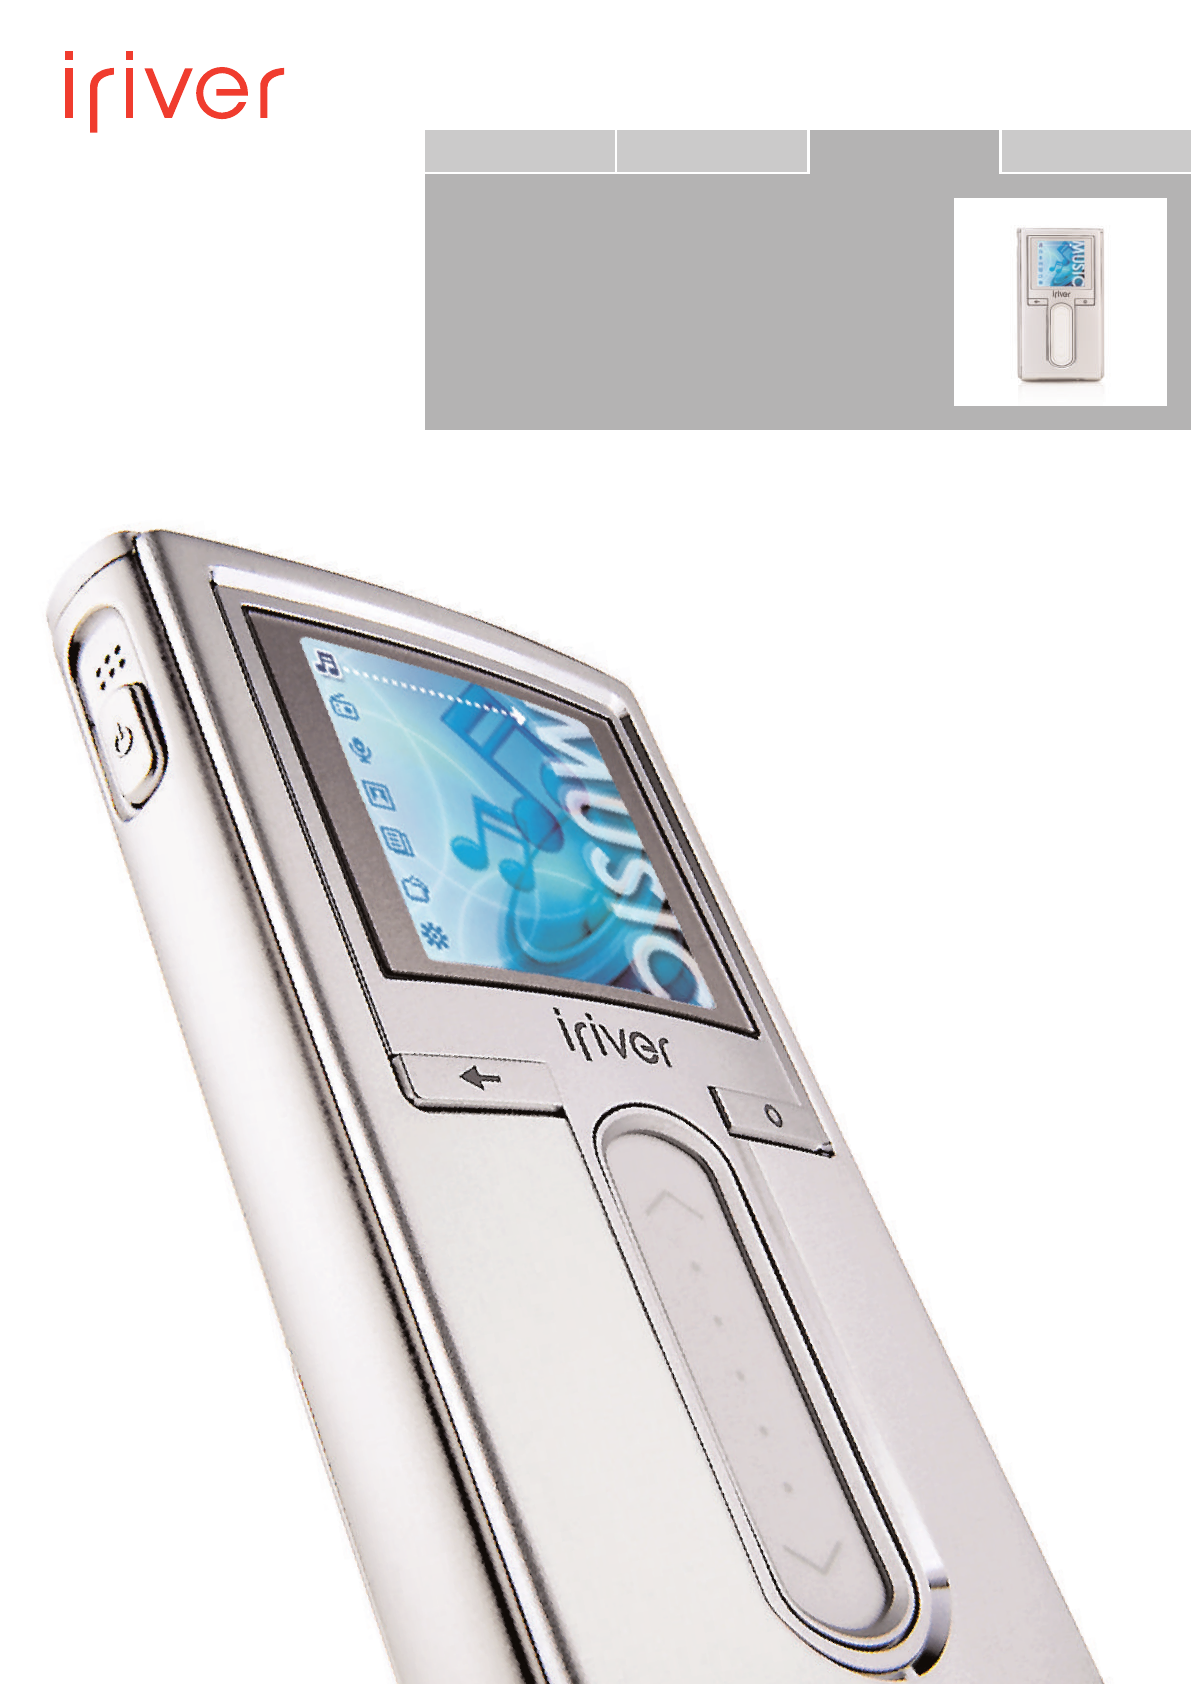 iriver mp3 player h10 user guide manualsonline com rh portablemedia manualsonline com Iriver Software Iriver Products